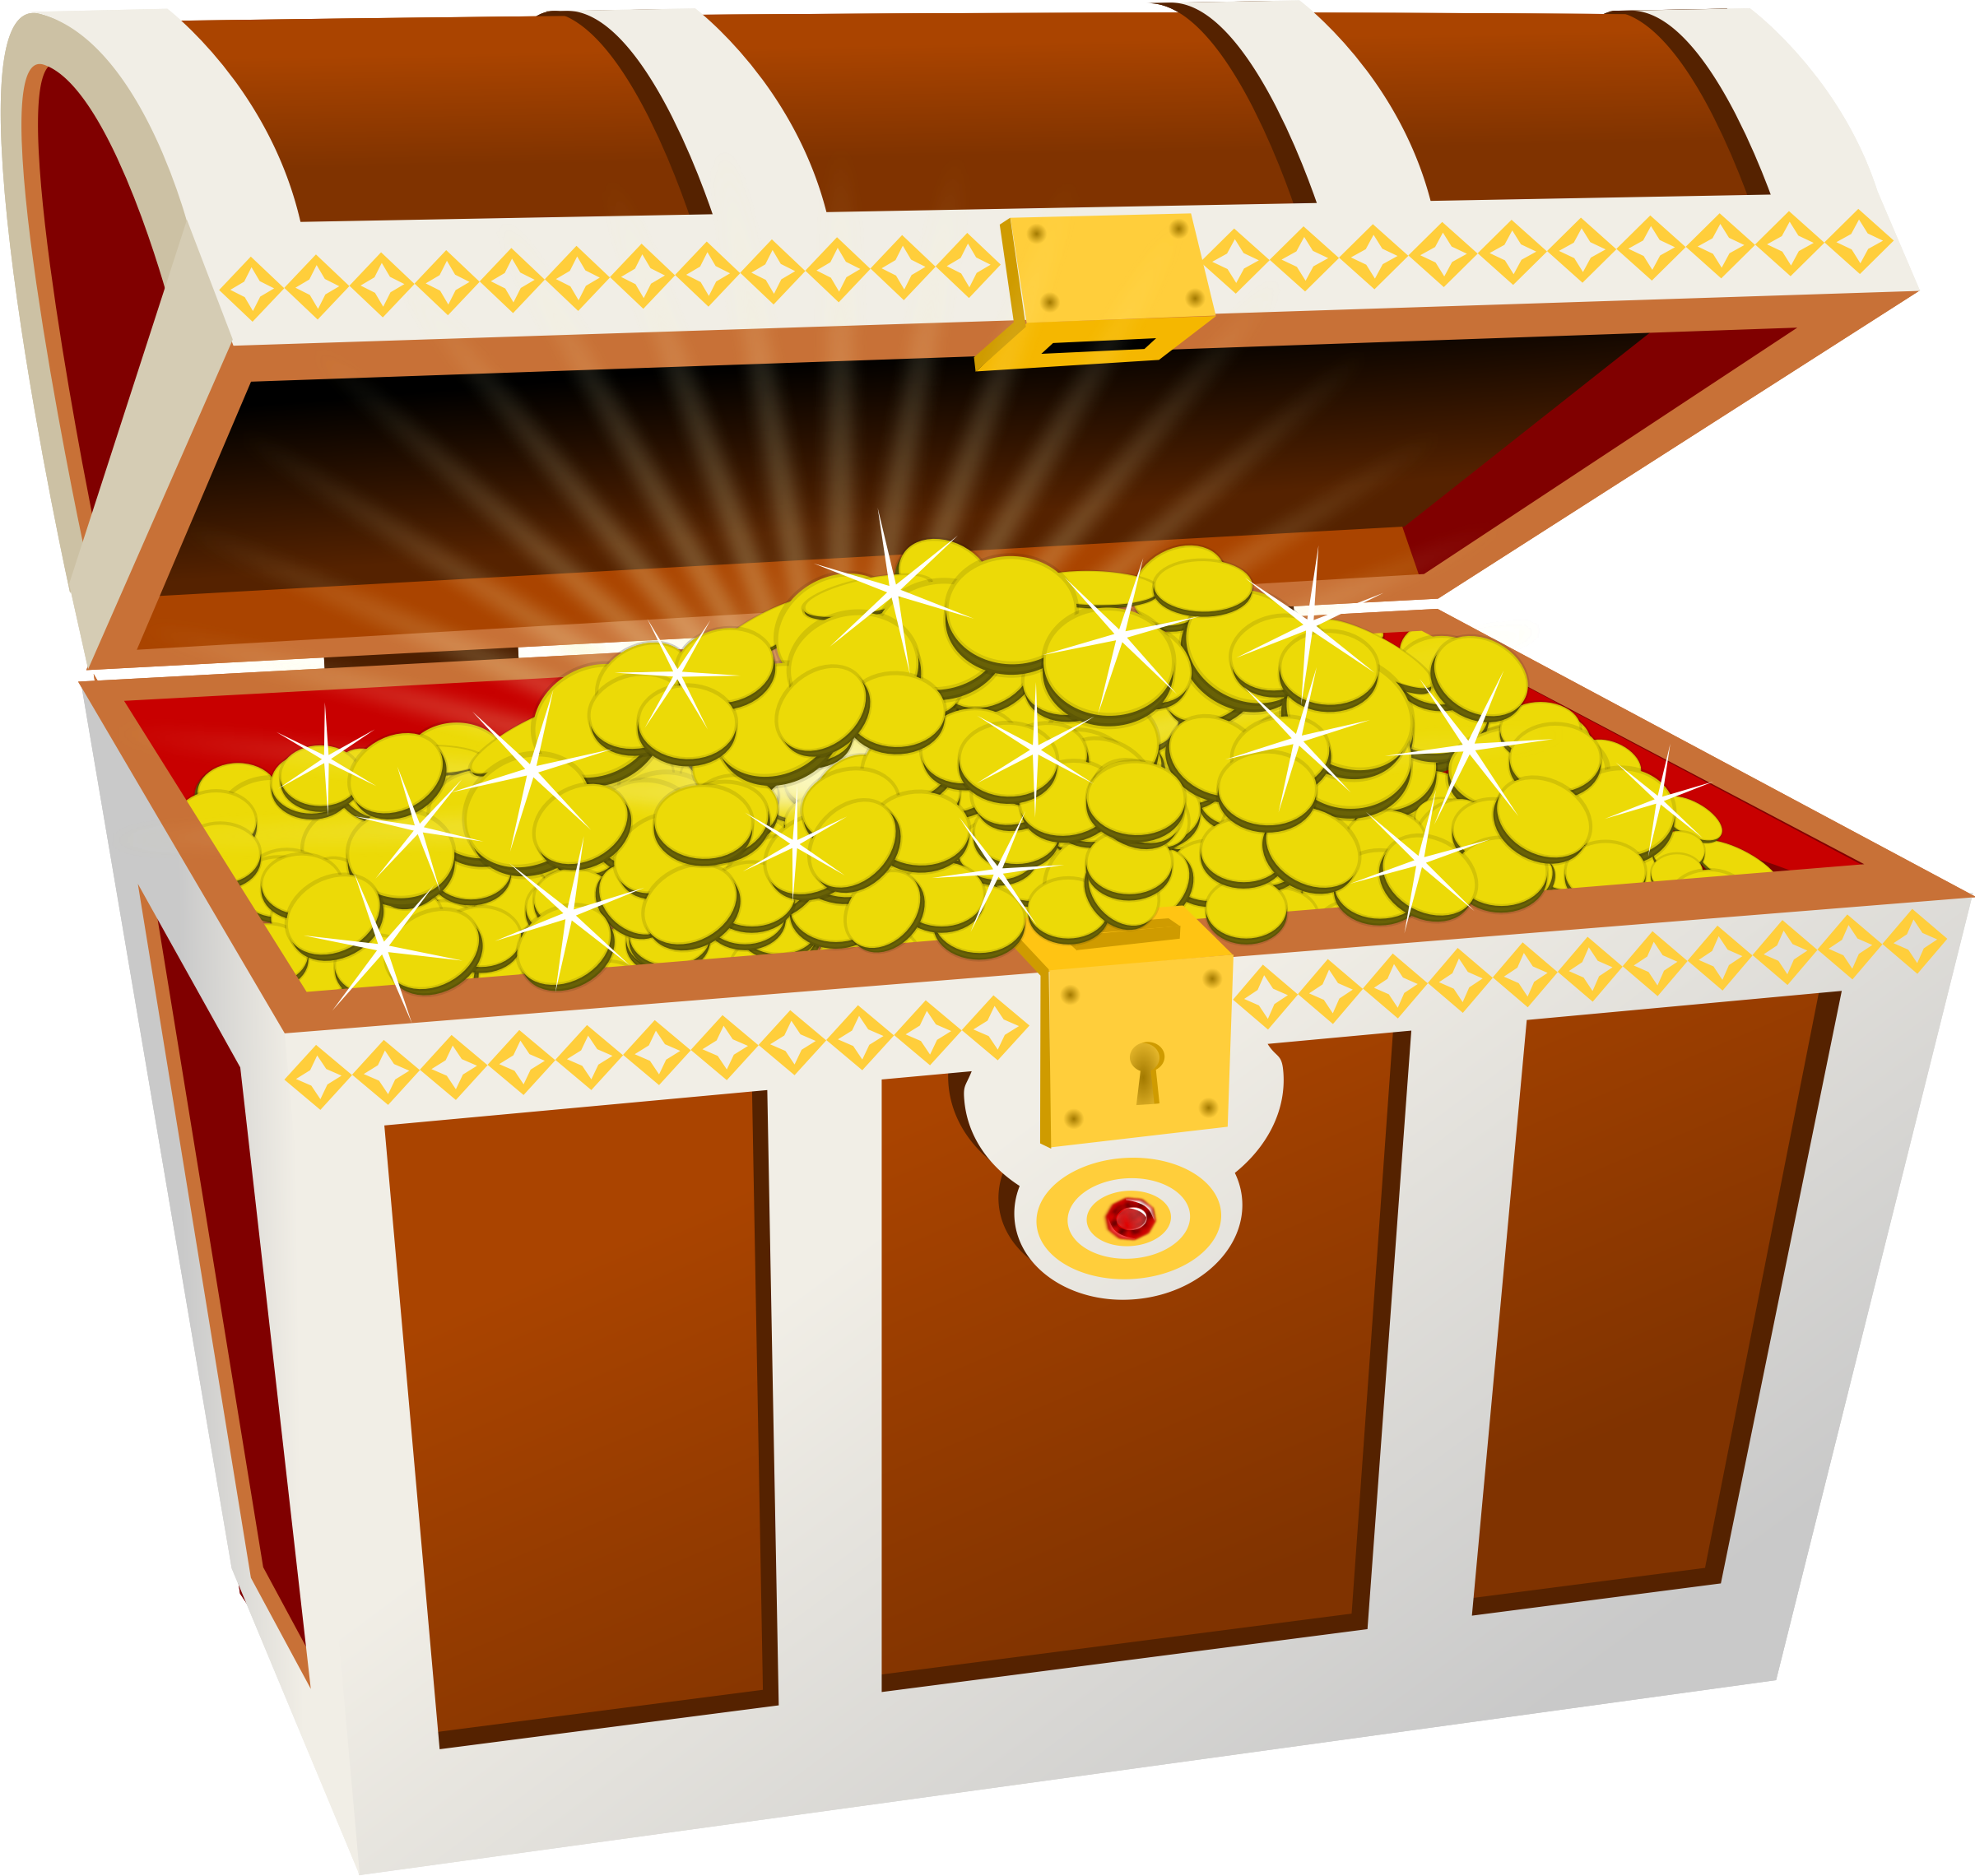 Treasure chest by Moini